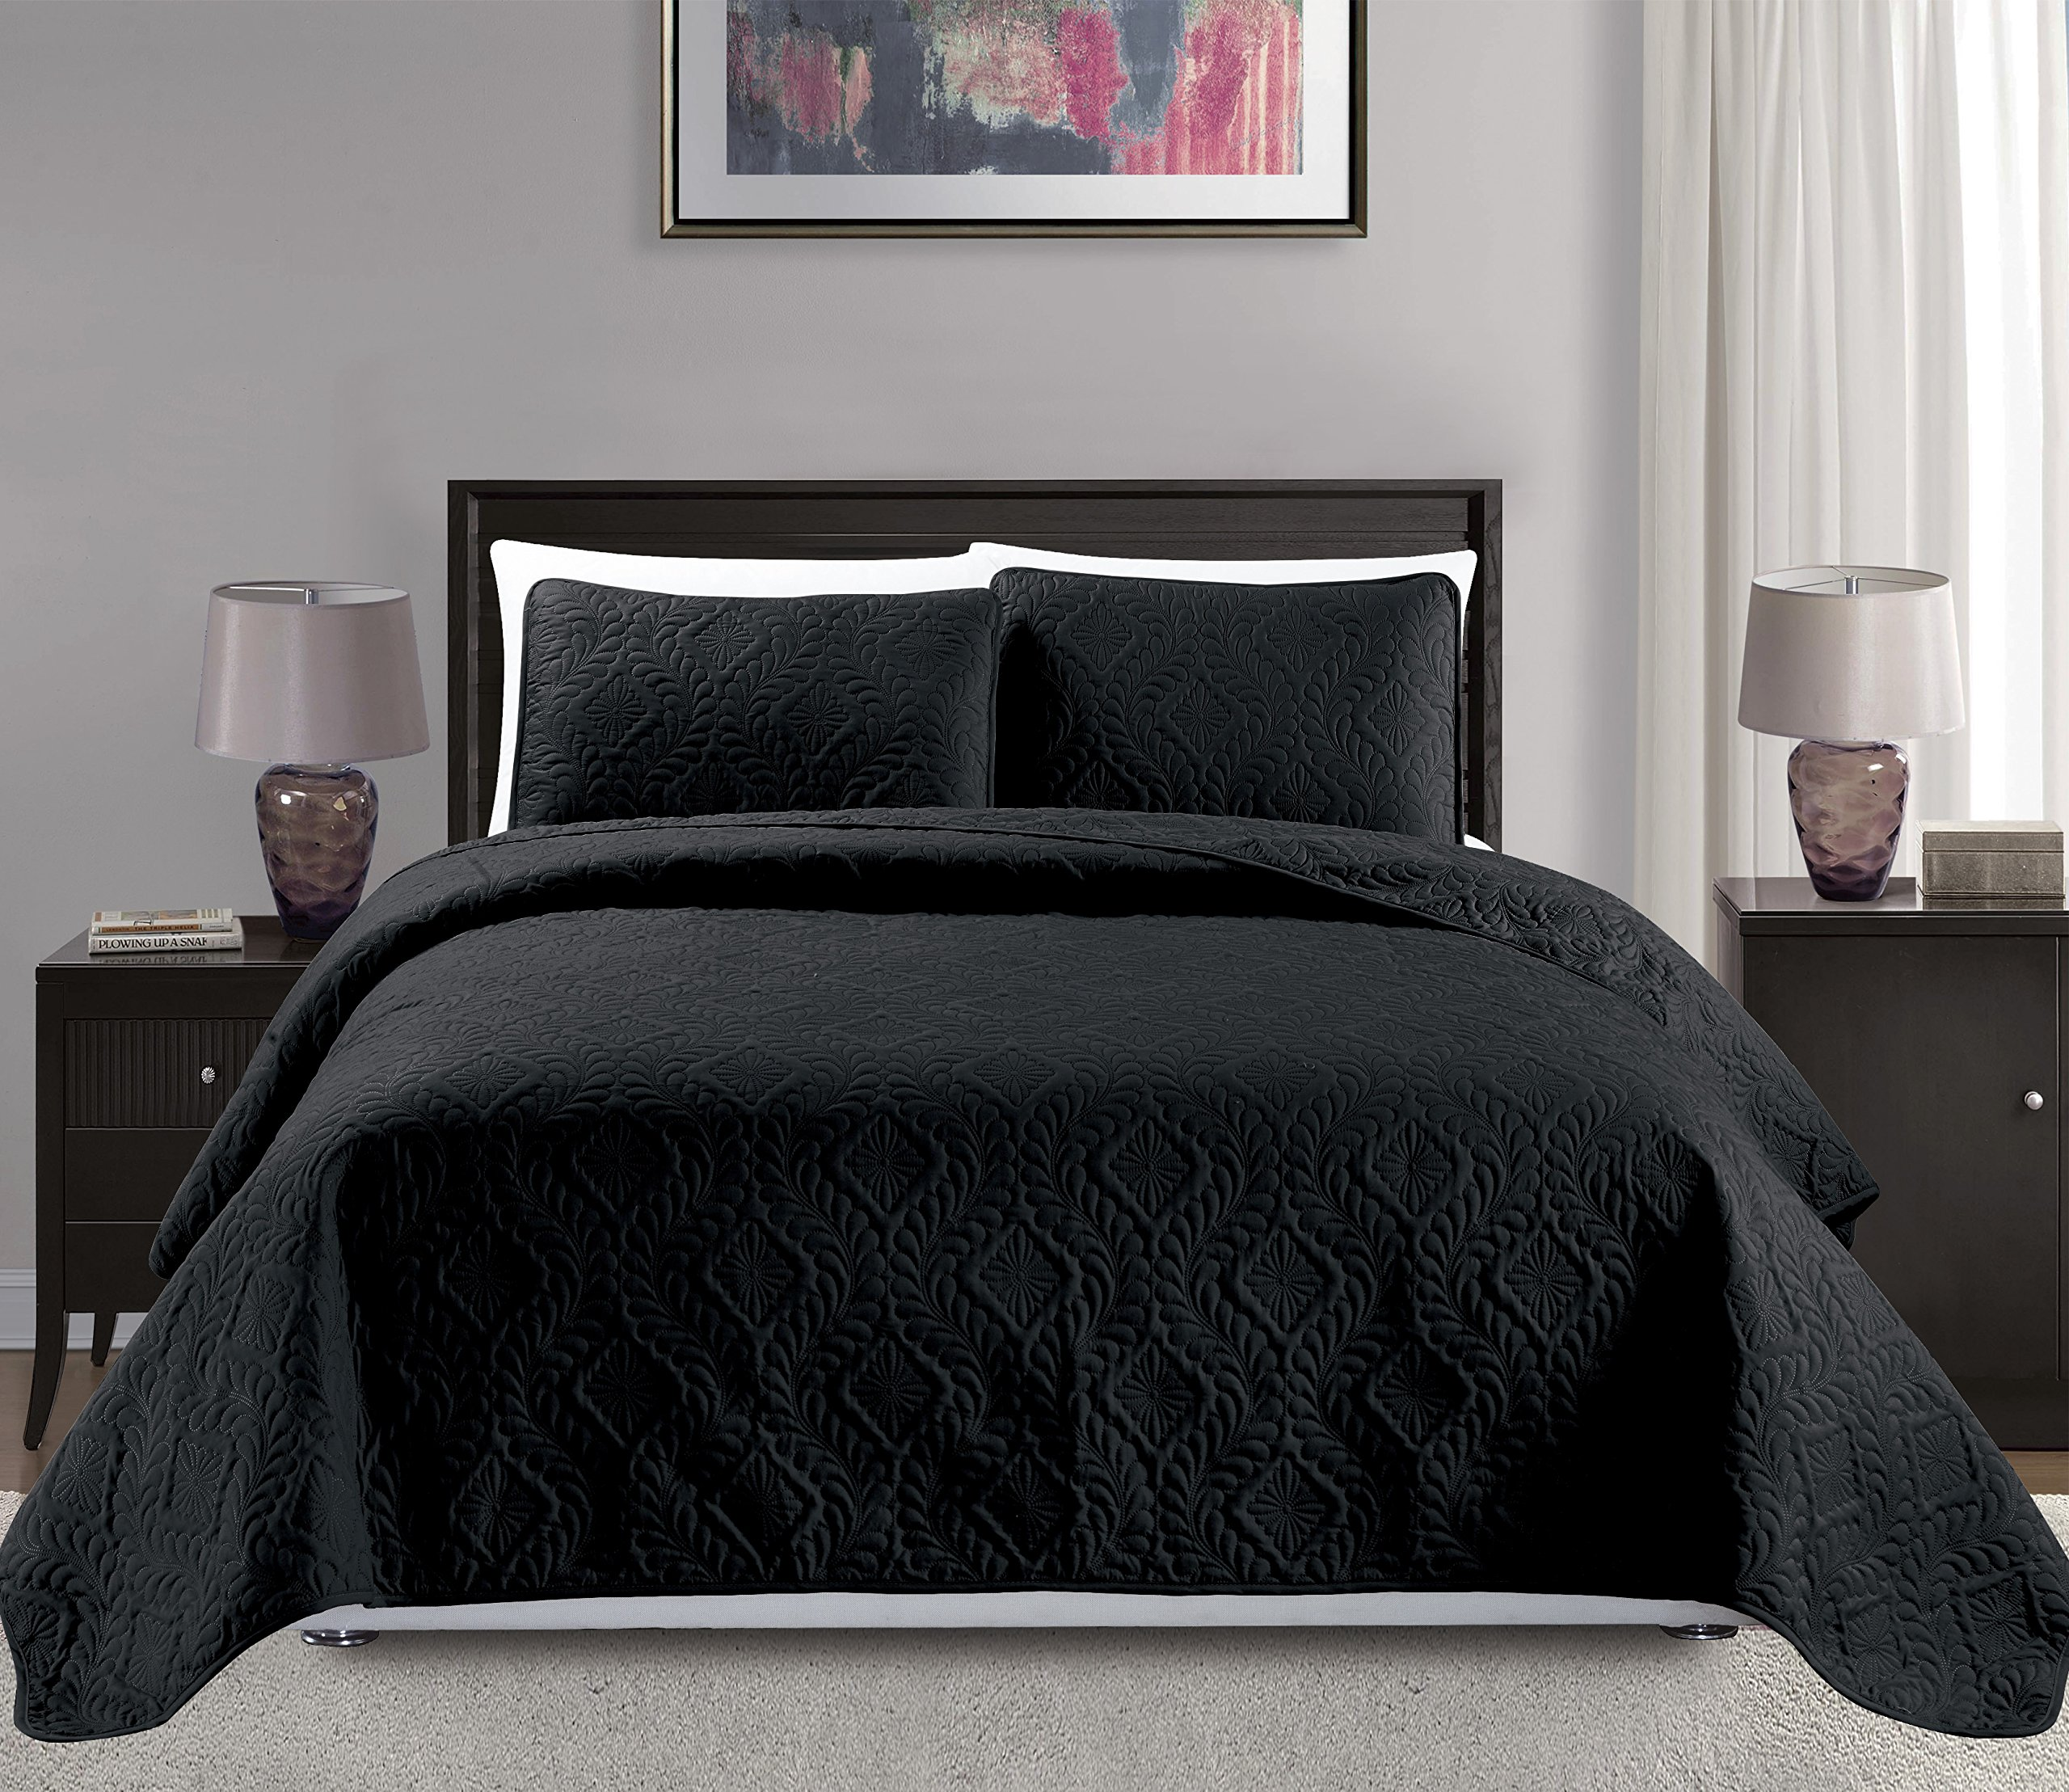 Mk Collection King/California king over size 118''x106'' 3 pc Diamond Bedspread Bed-cover Embossed solid Black New